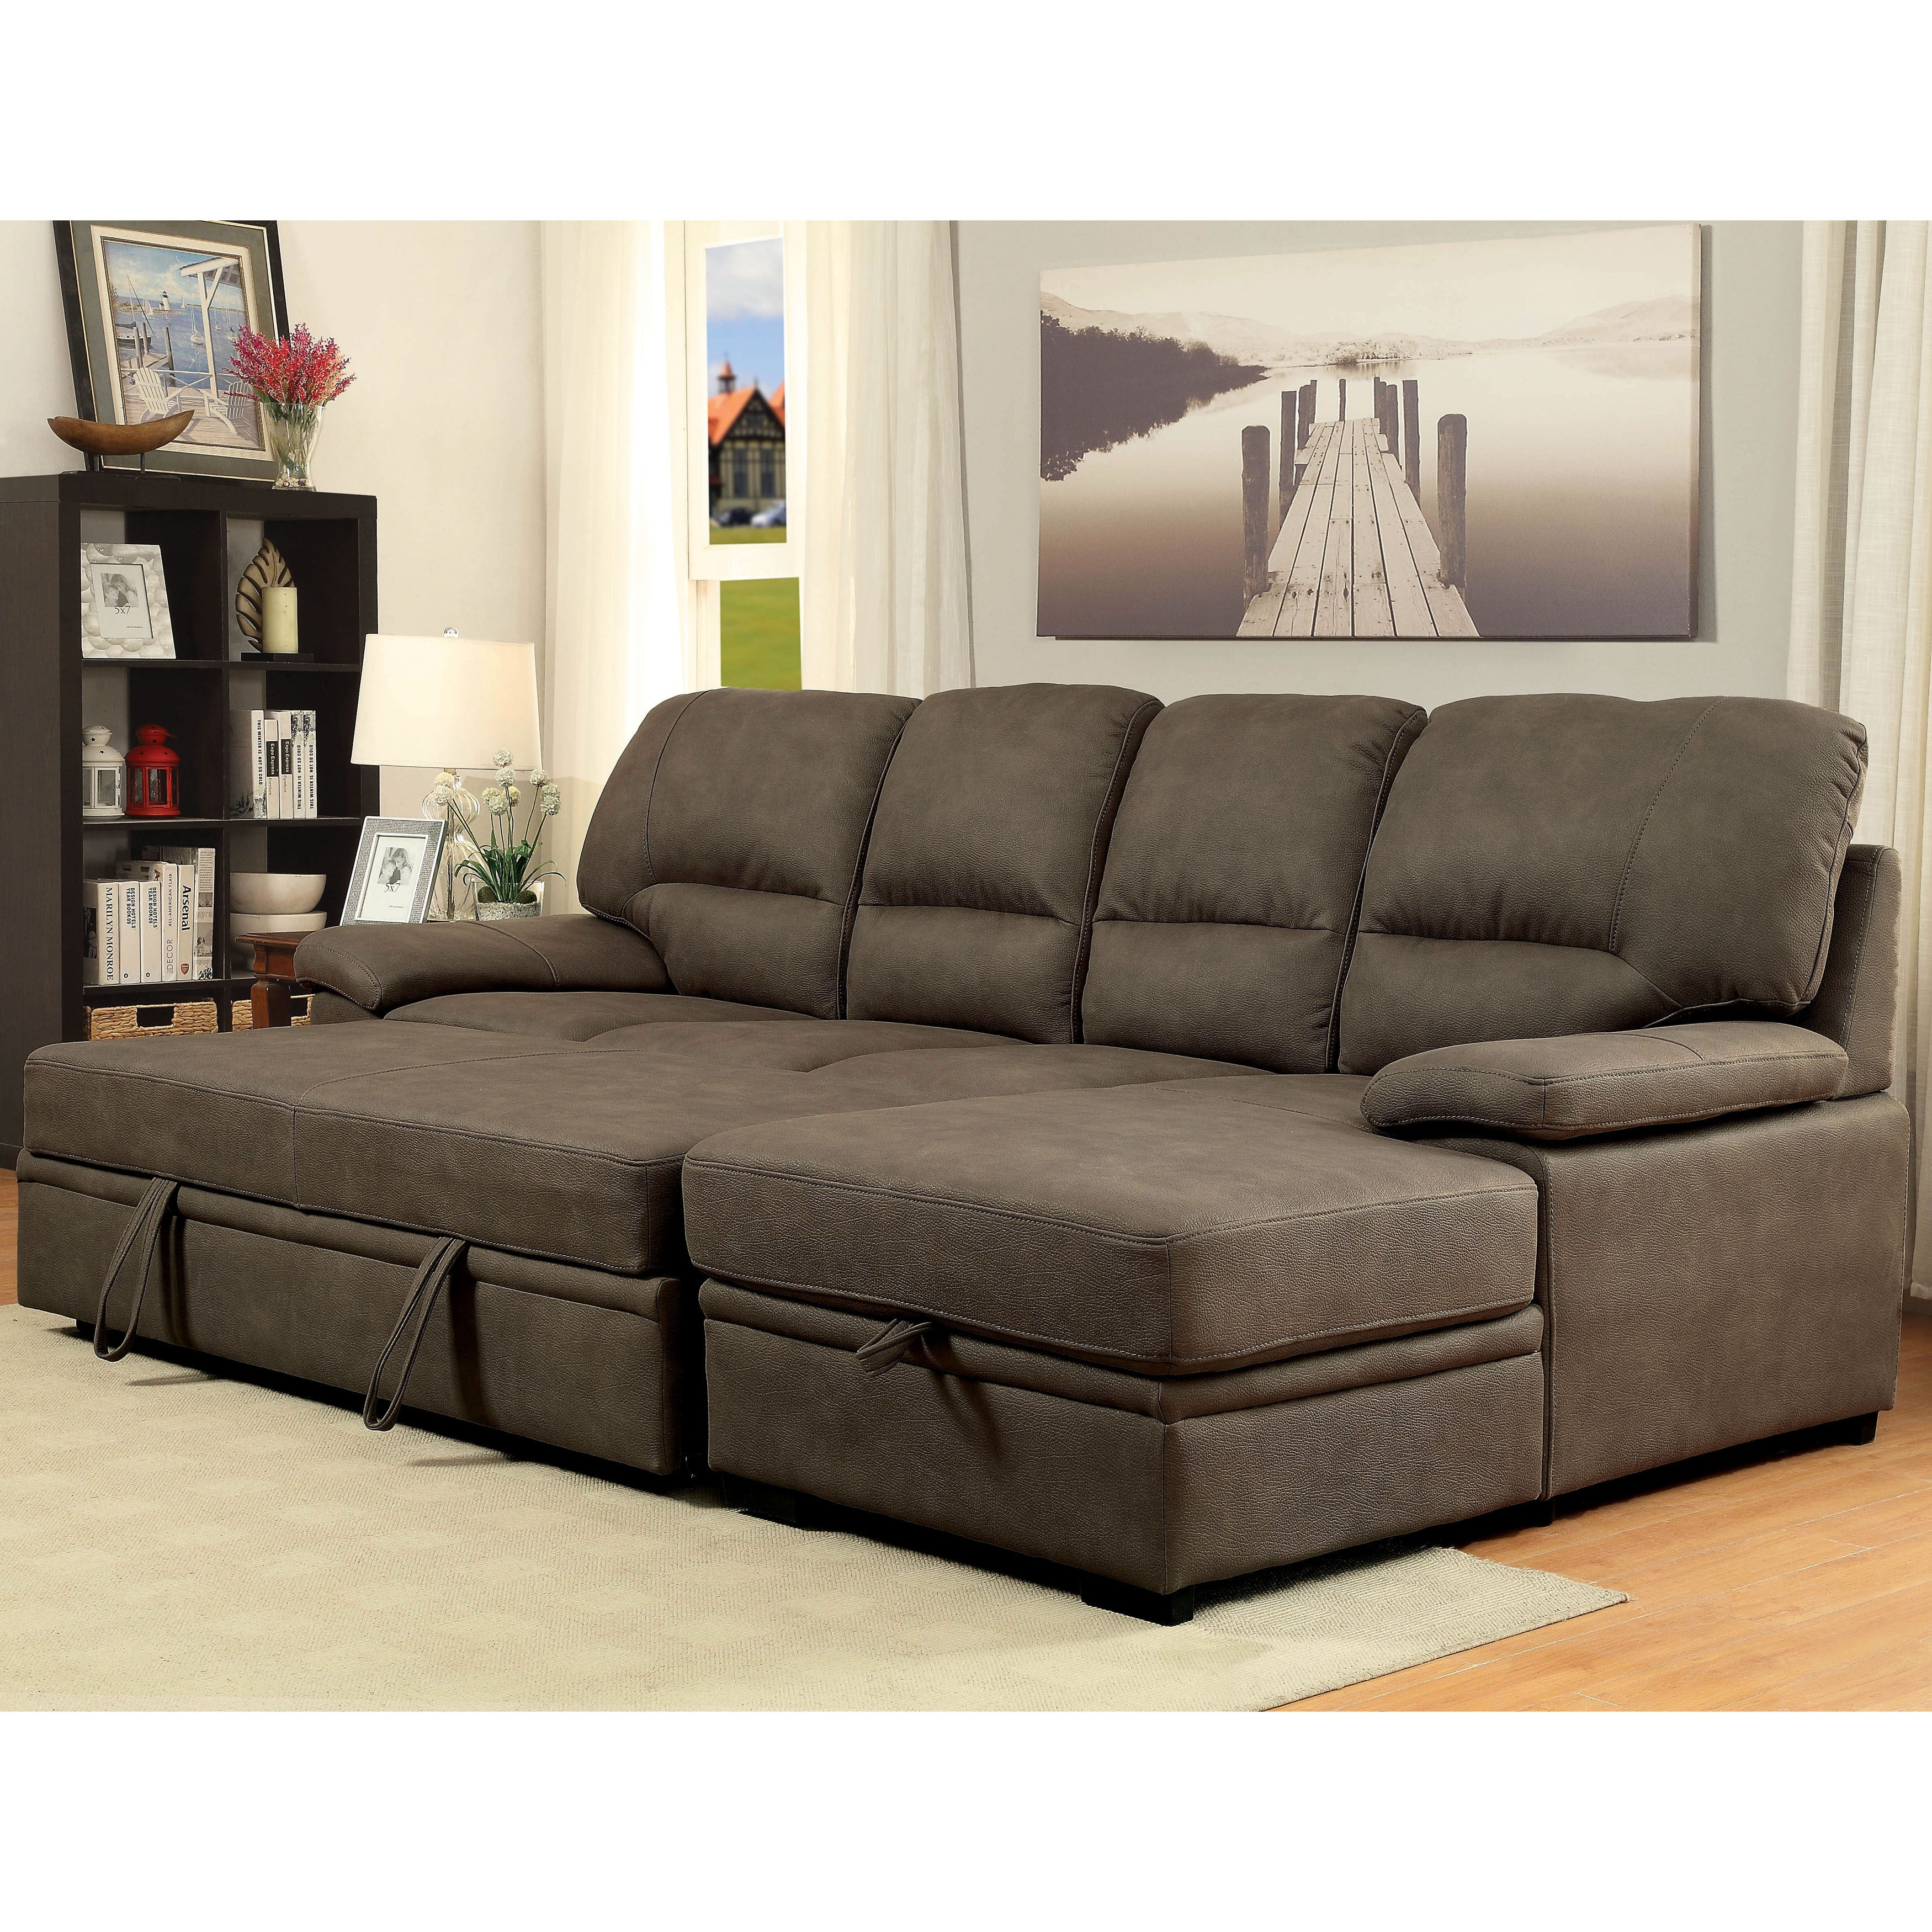 Furniture Of America Delton Contemporary Nubuck Leather Sleeper Sectional Free Shipping Today 10539042